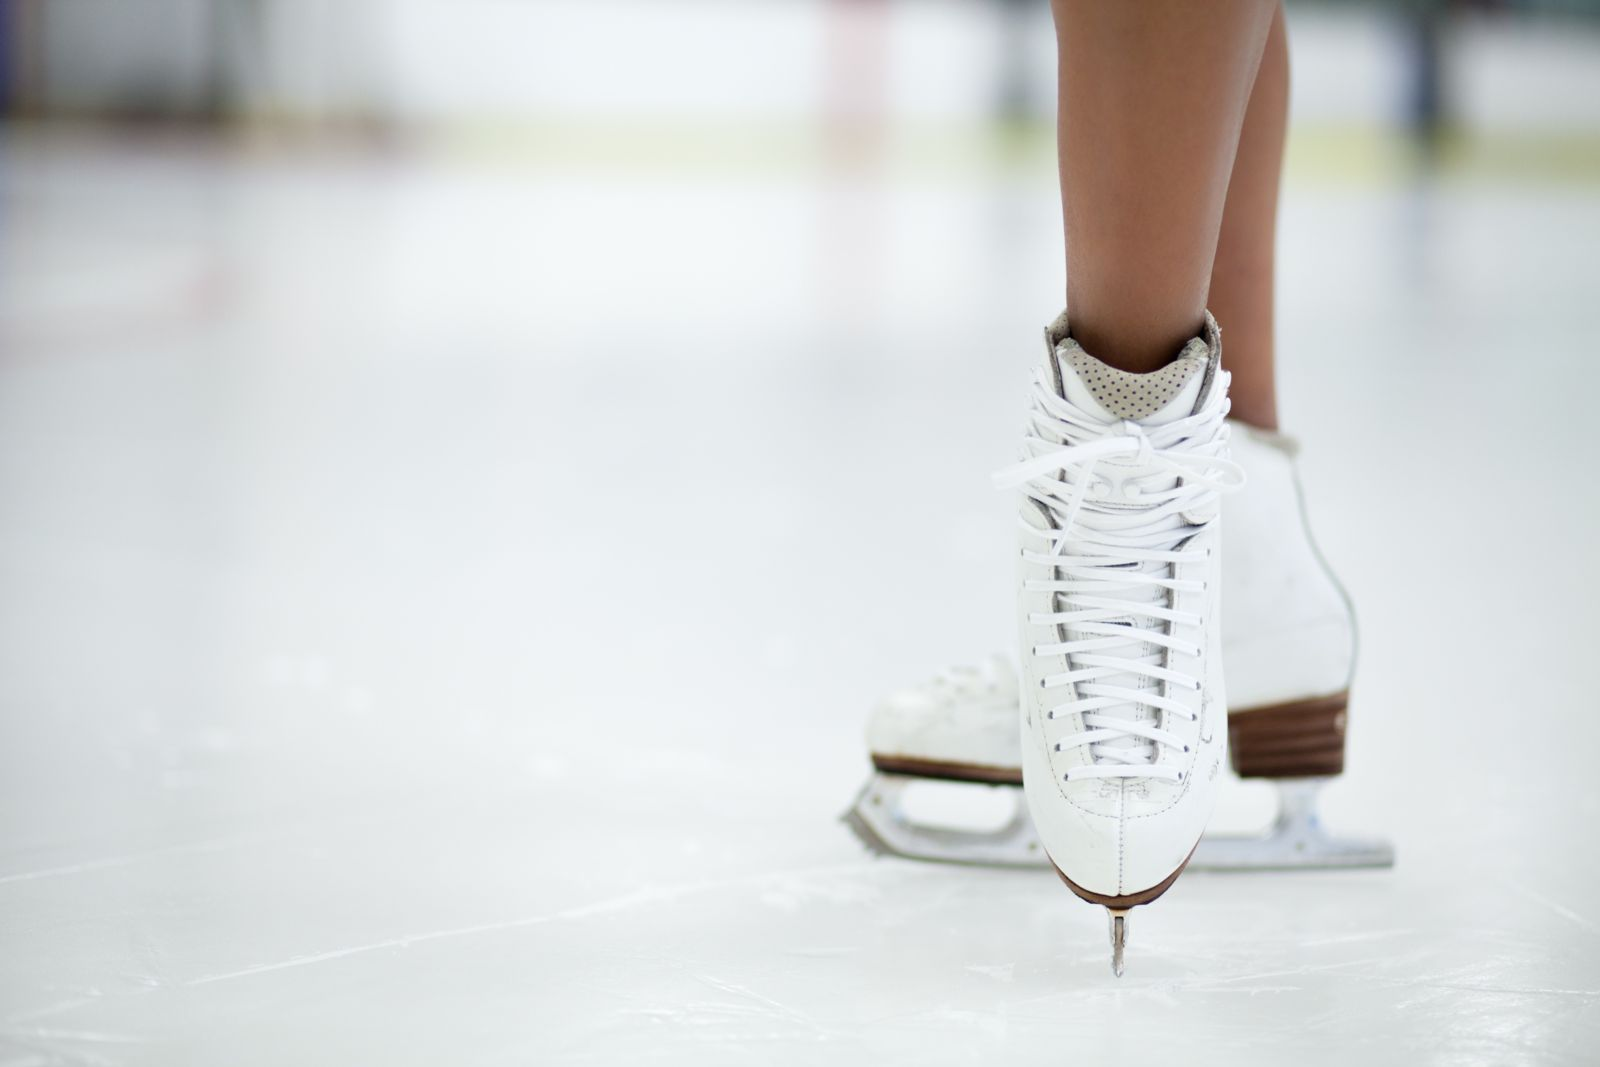 Figure skating causing heel pain